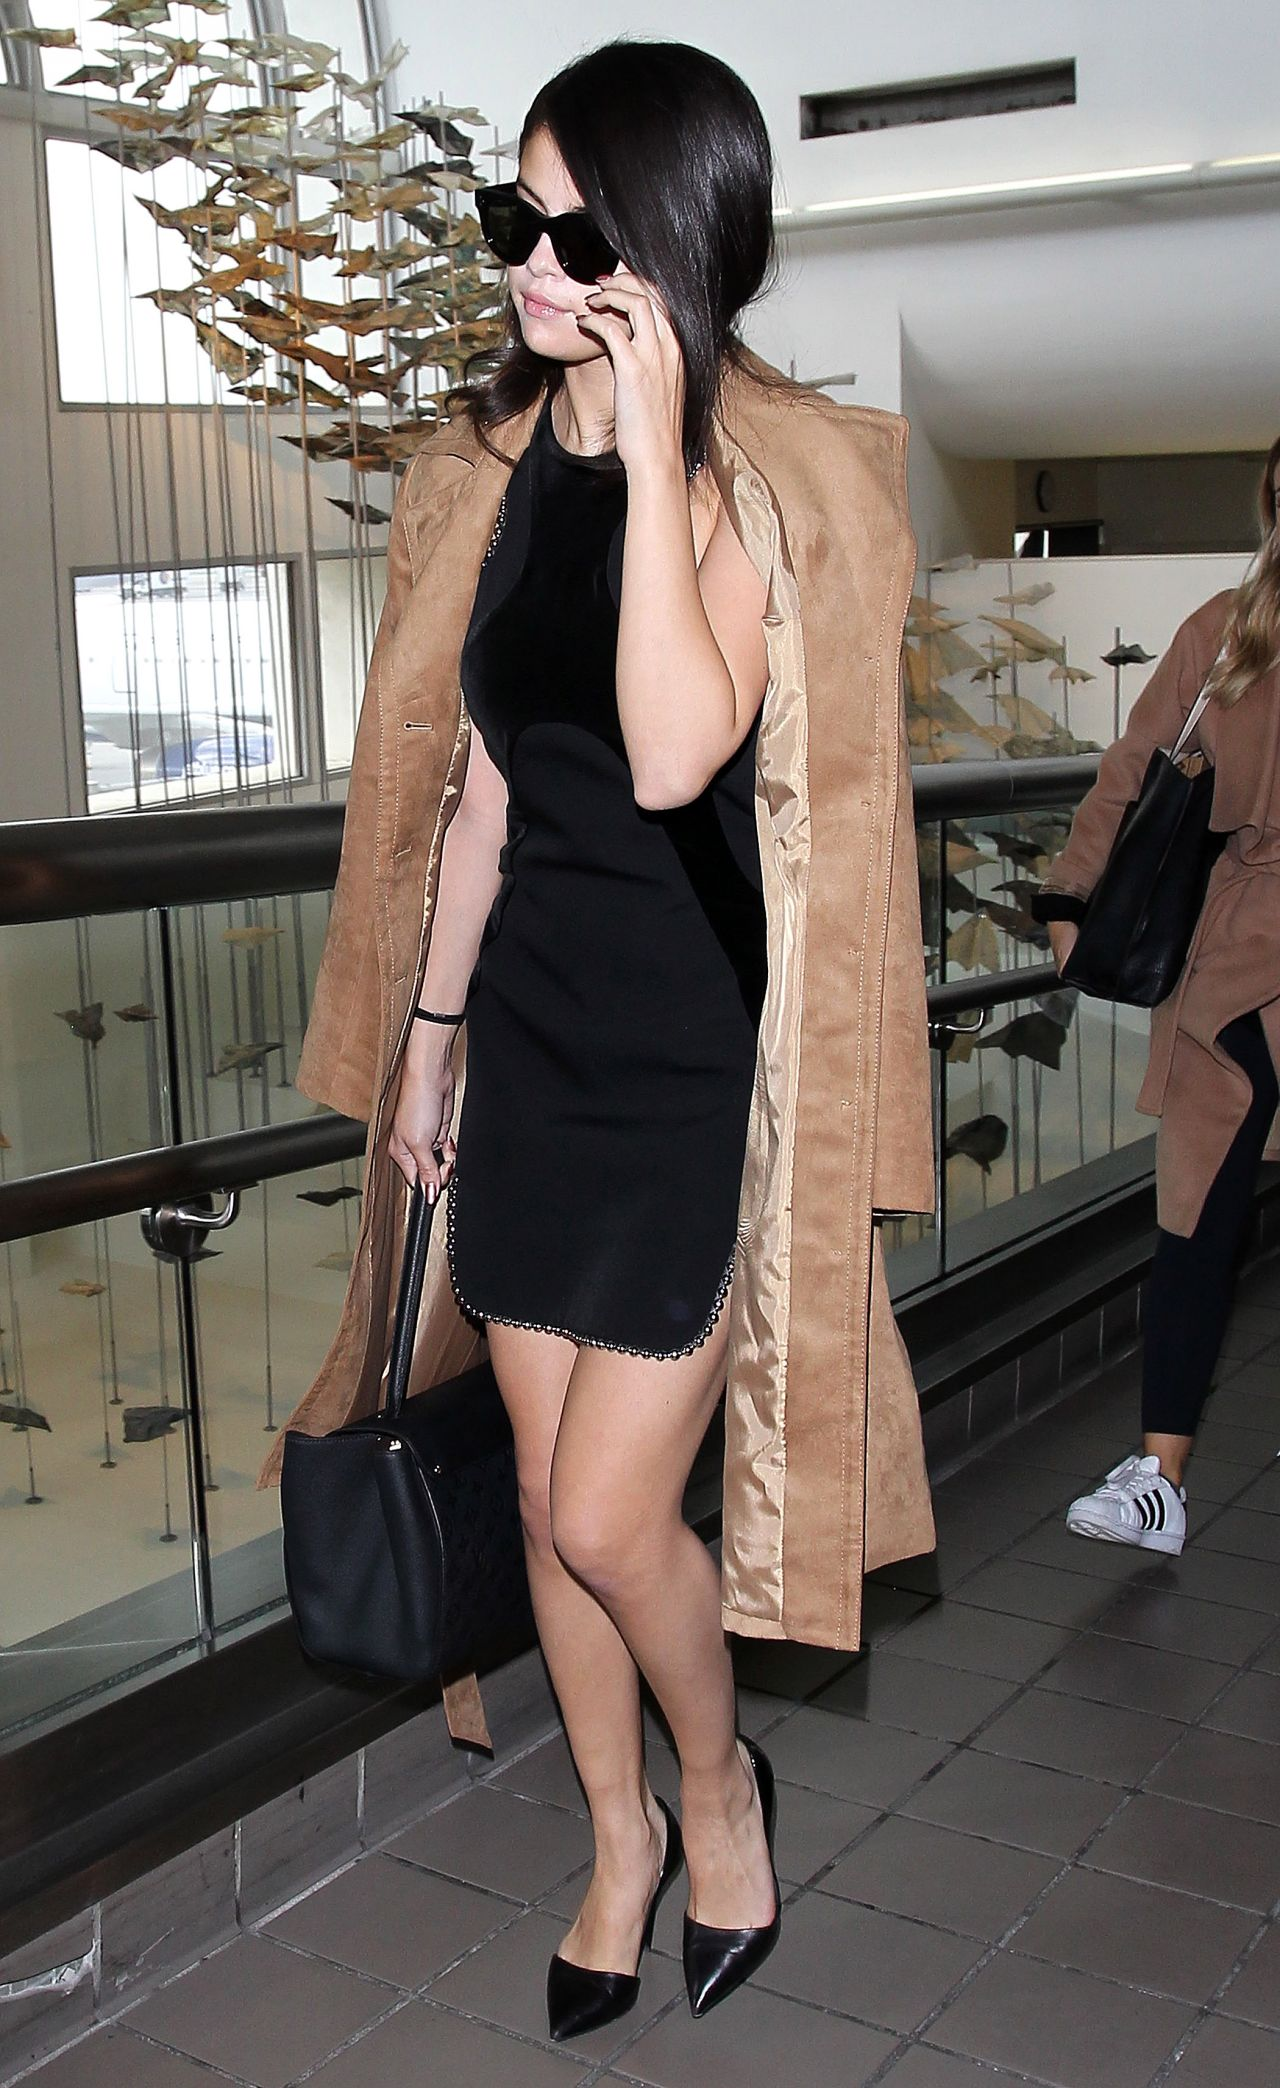 selena-gomez-arriving-at-lax-airport-in-los-angeles-october-2015_5